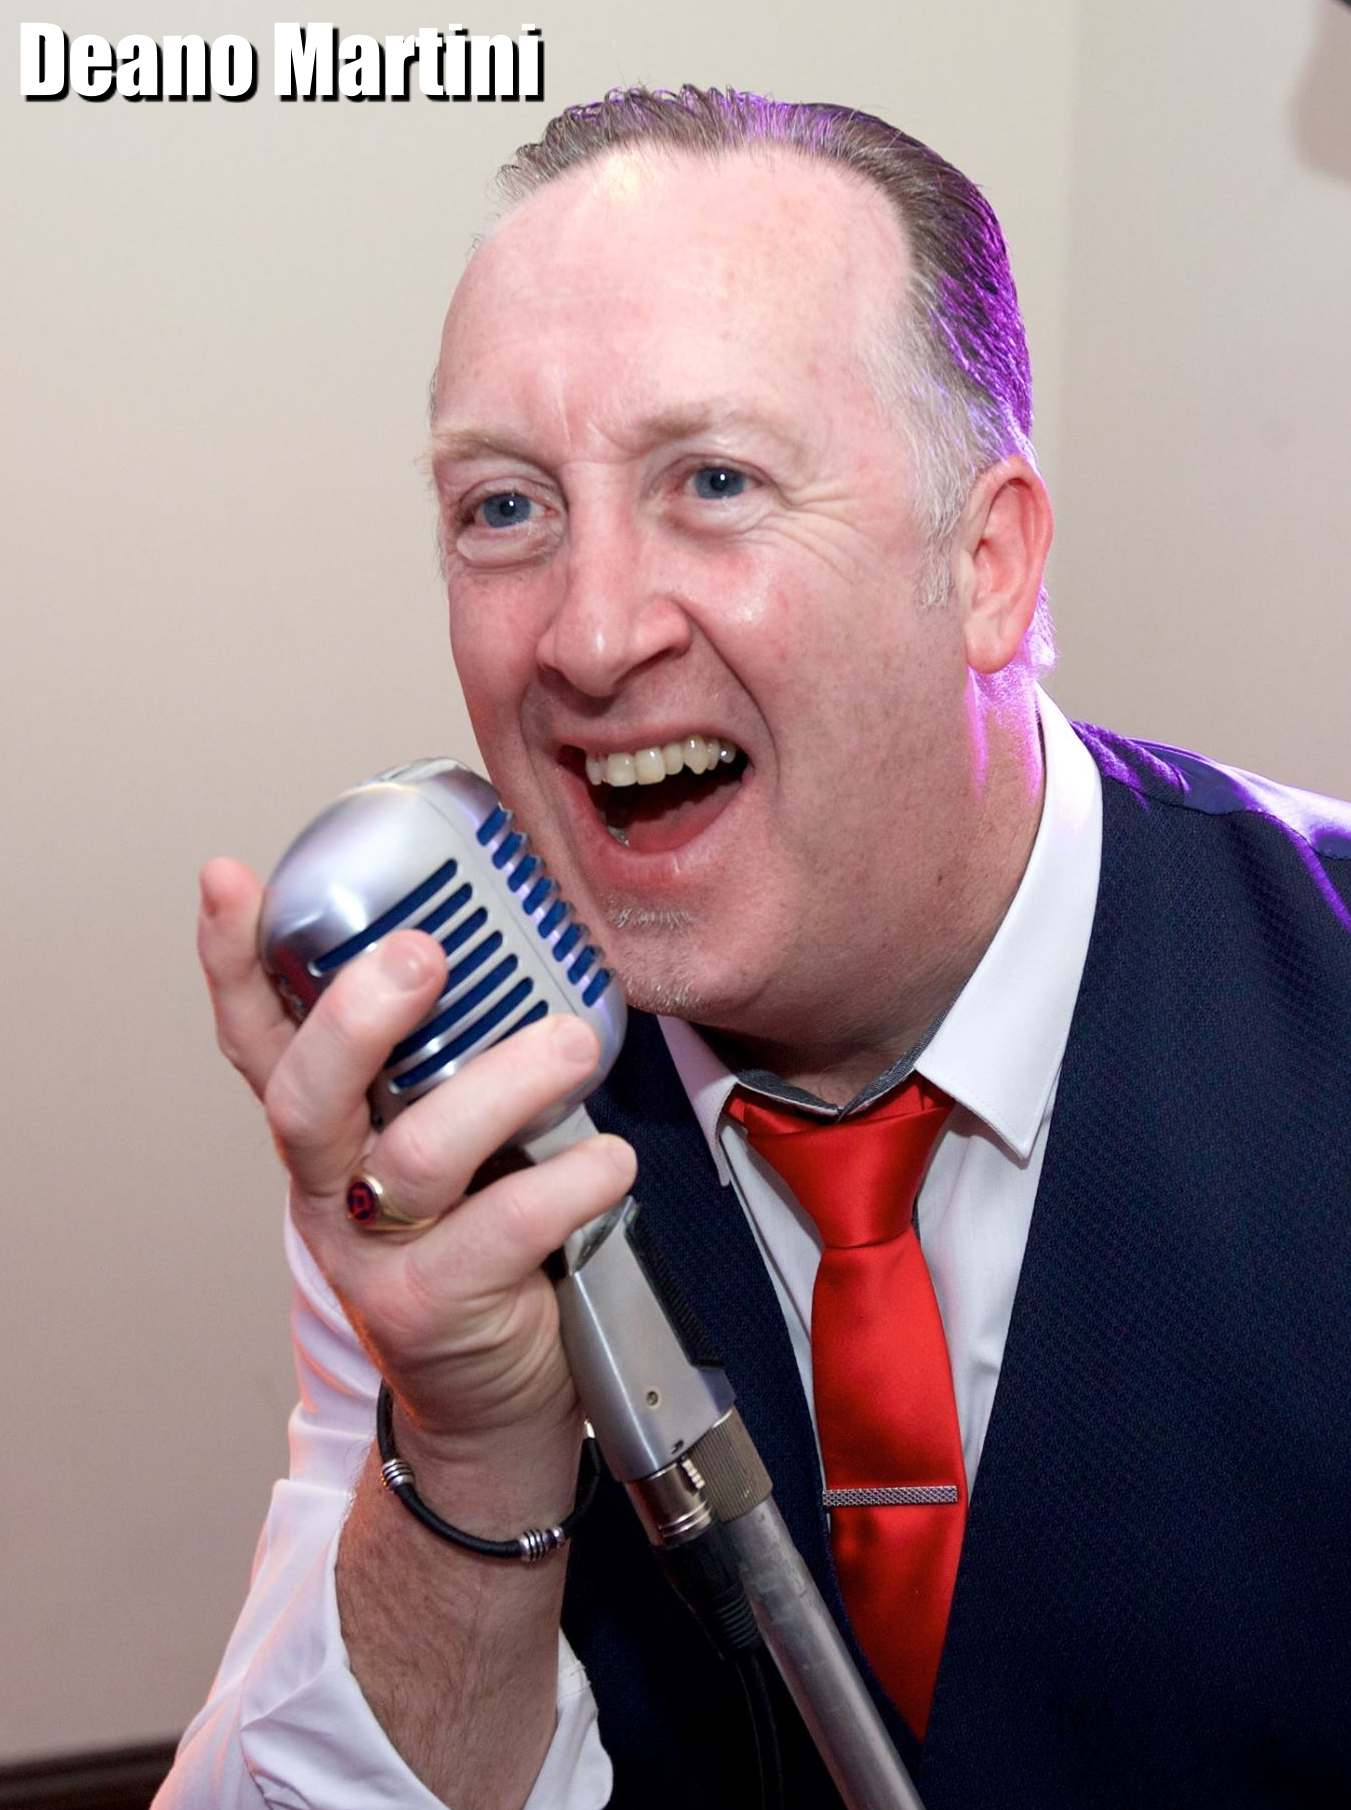 Deano singer, singer swansea, wedding singer swansea, wedding entertainment swansea, wedding entertainer, best swing singer, rat pack, frank sinatra, bible tribute, best bible tribute, best wedding singer, The Wedding Singer,